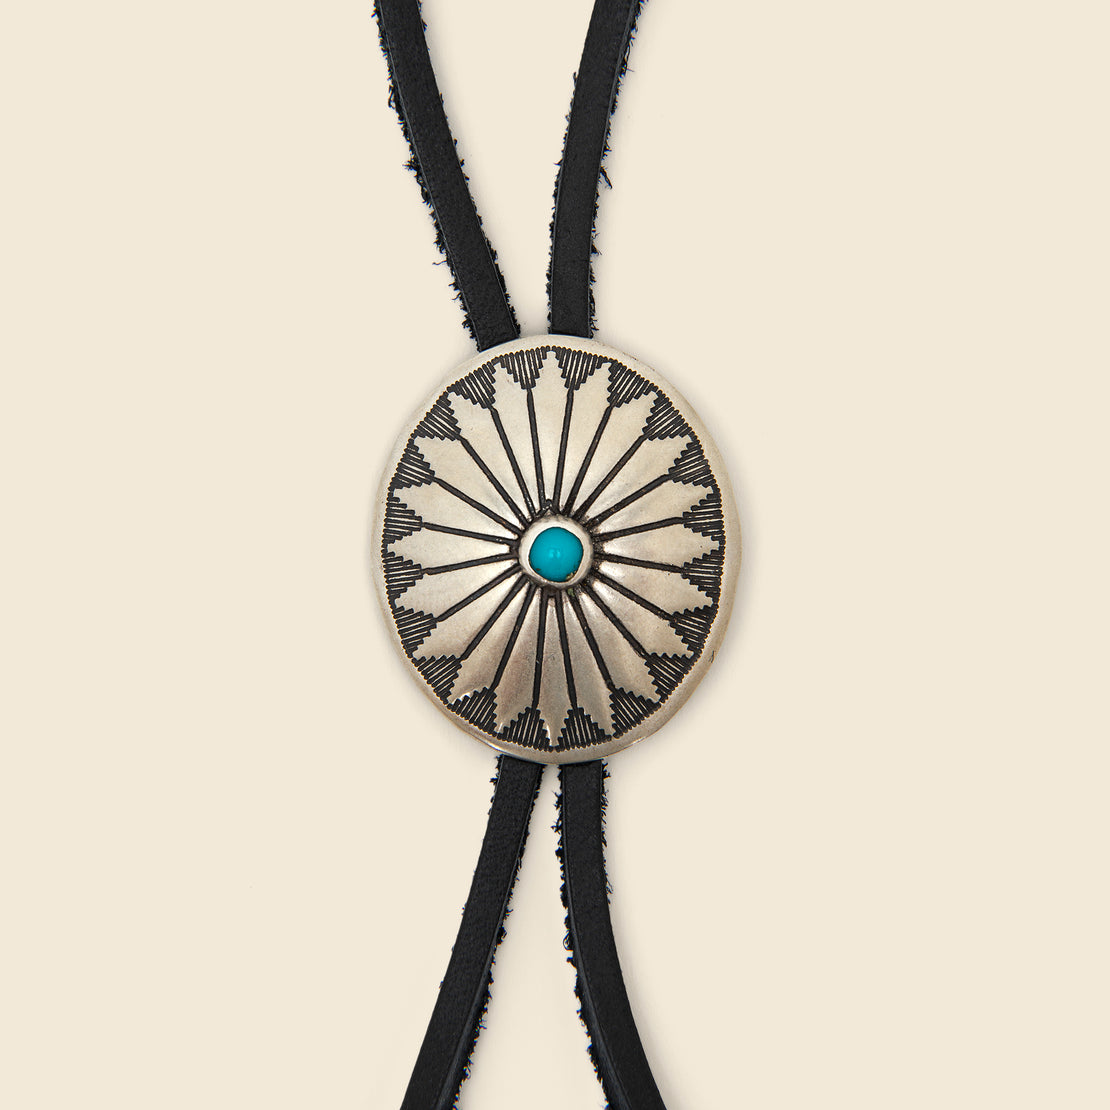 Leather Bolo Tie with Concho - Black & Turquoise Flower